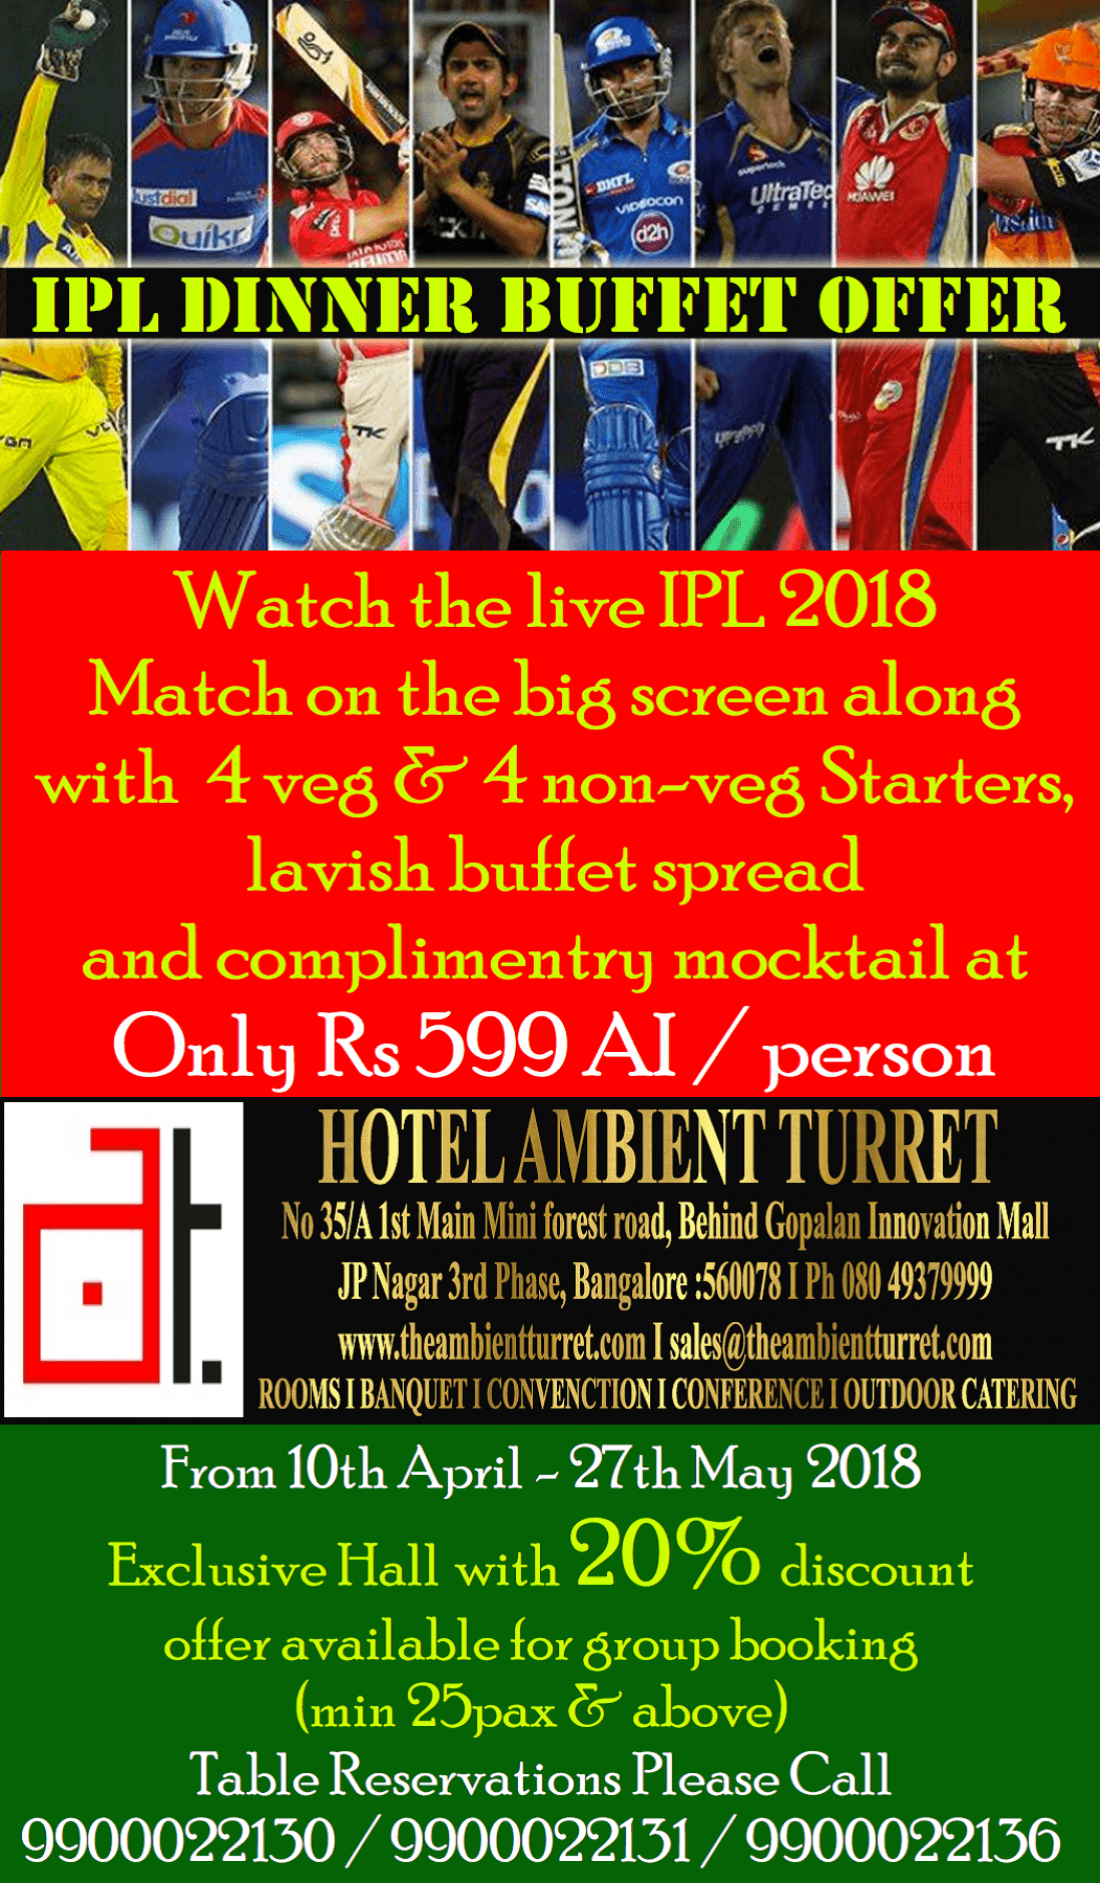 IPL Dinner Buffet Offer at Hotel Ambient Turret